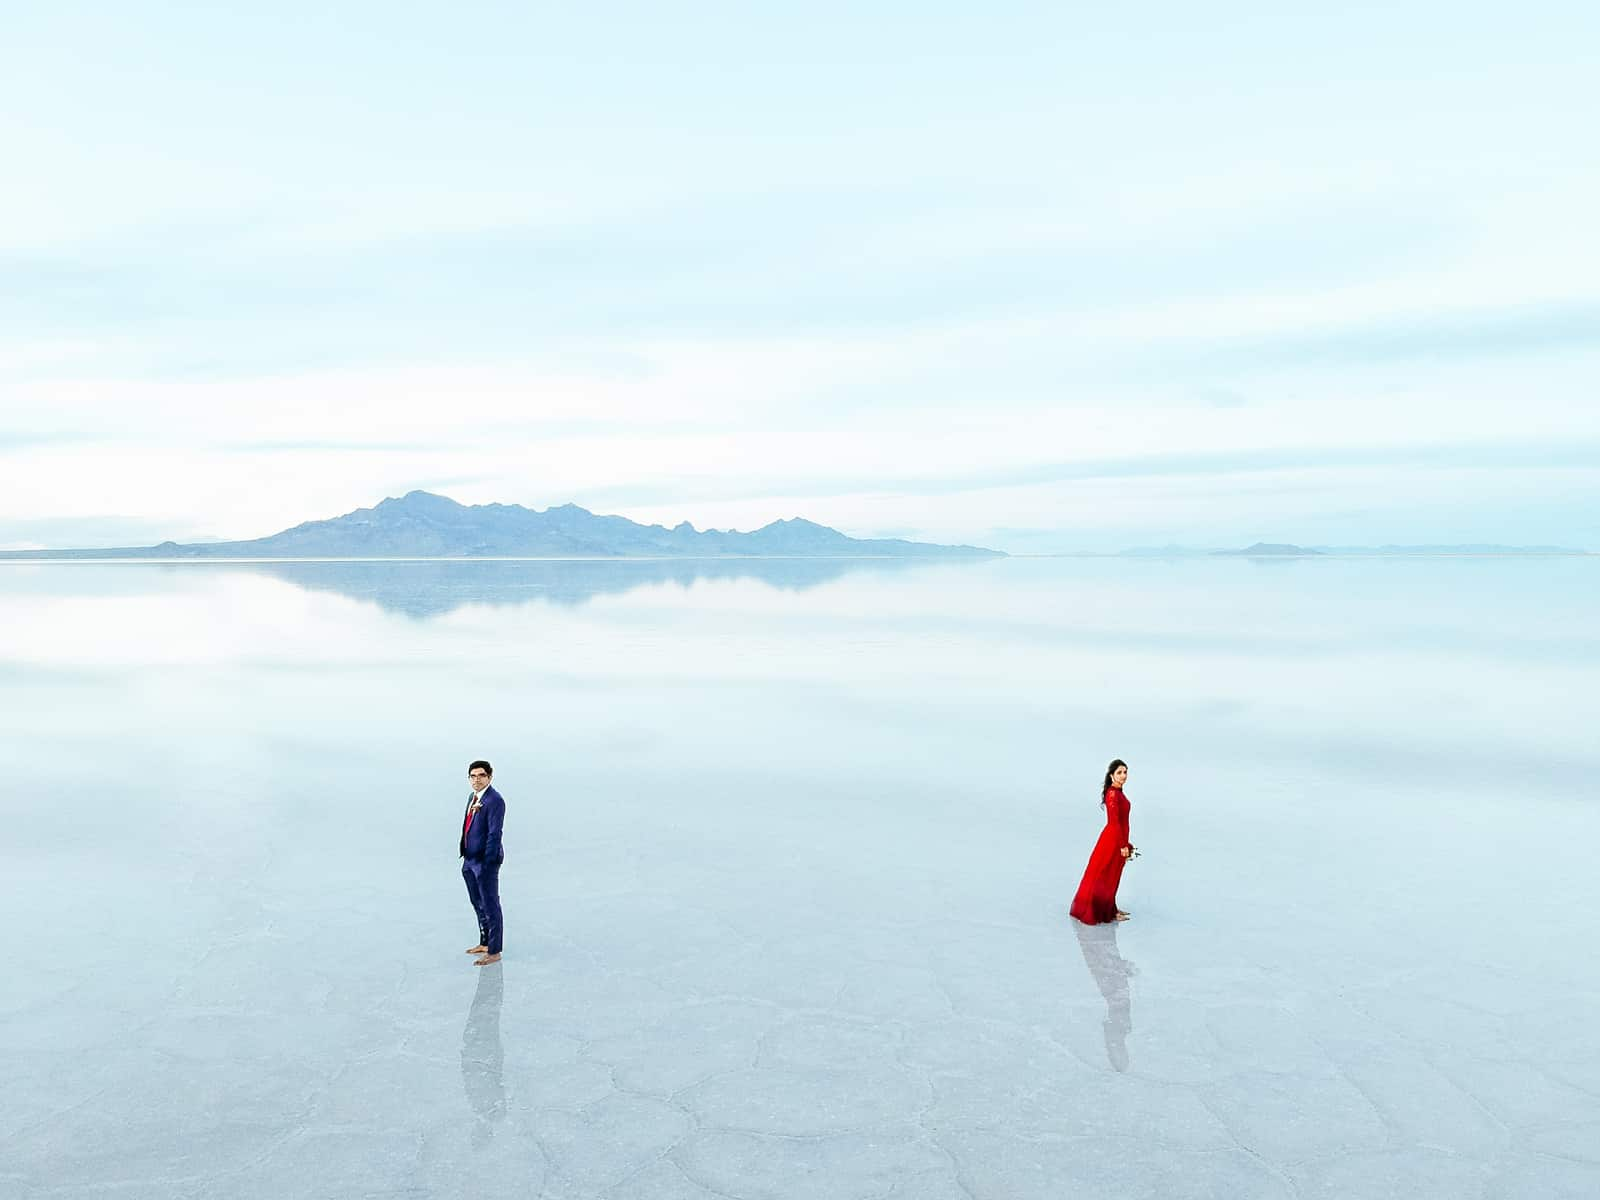 drone photography, Bonneville Salt Flats Engagement Photos, Utah engagement session, engagement photography, red dress, clouds, water reflection, destination wedding